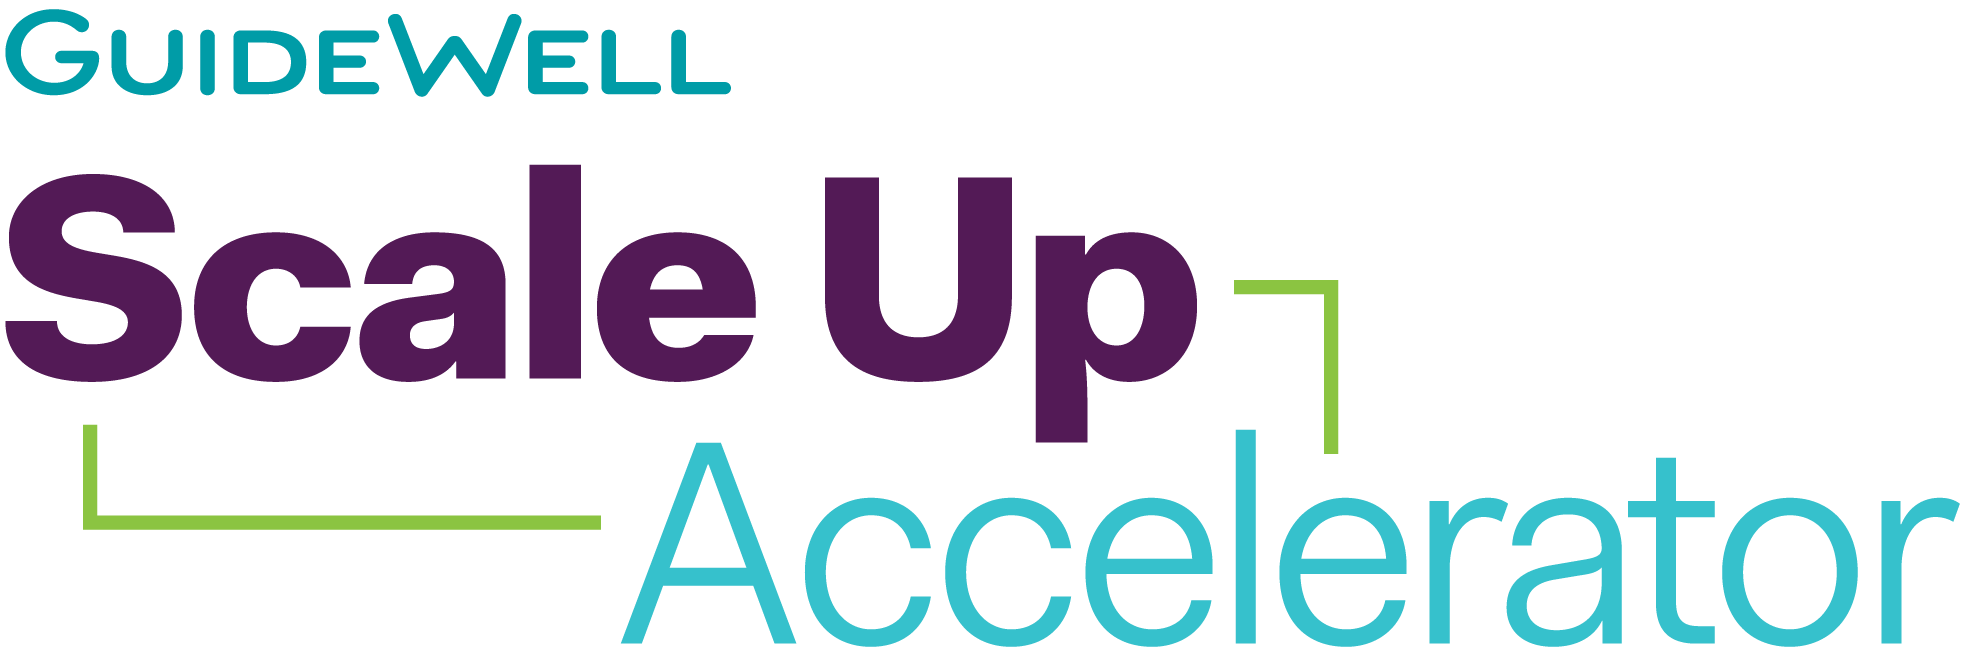 GuideWell Scale Up Accelerator Logo